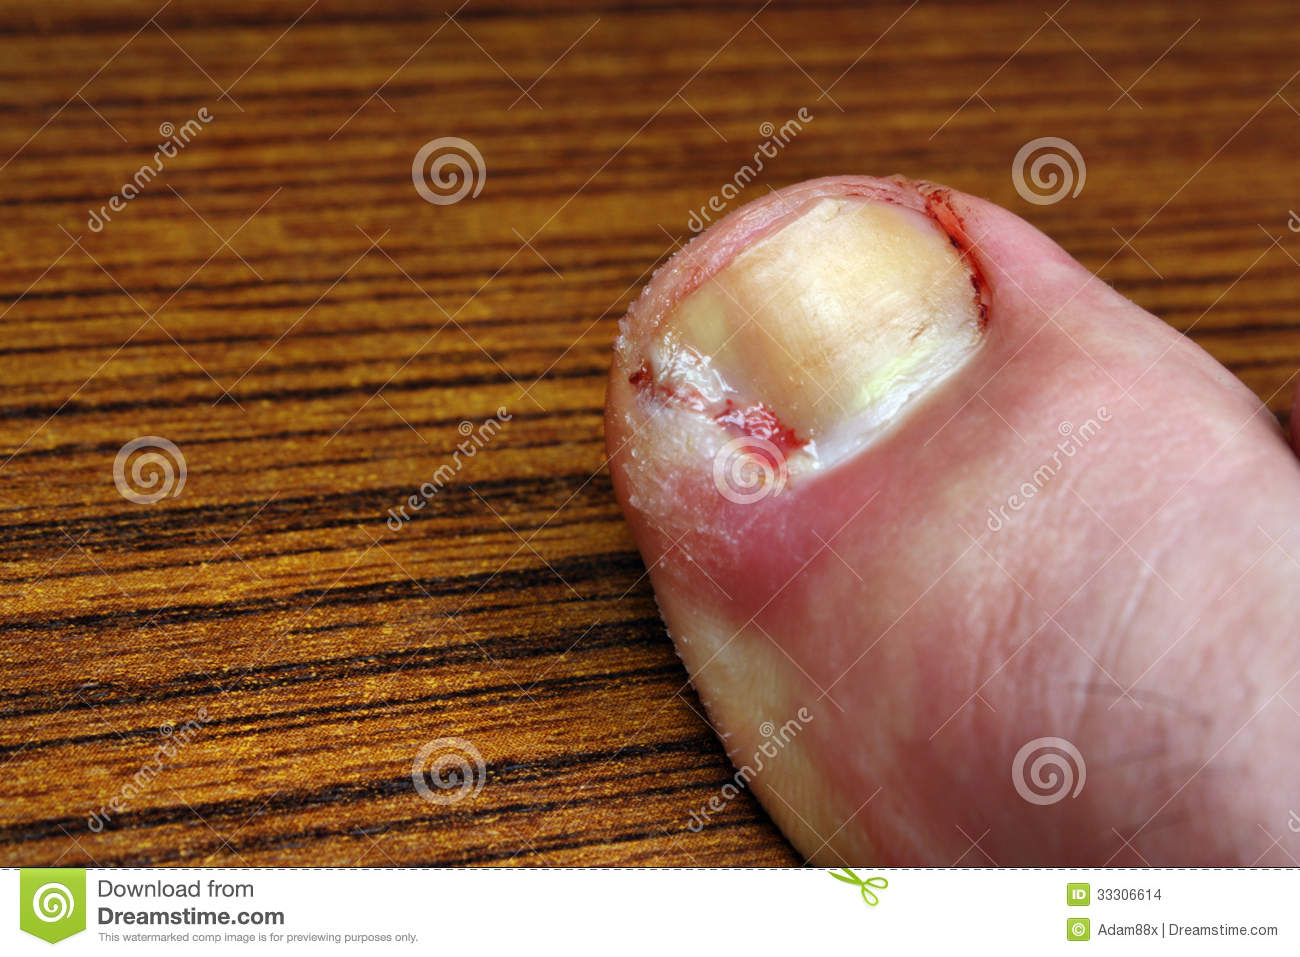 Toenail stock photo  Image of pedicure, deformed, chipped